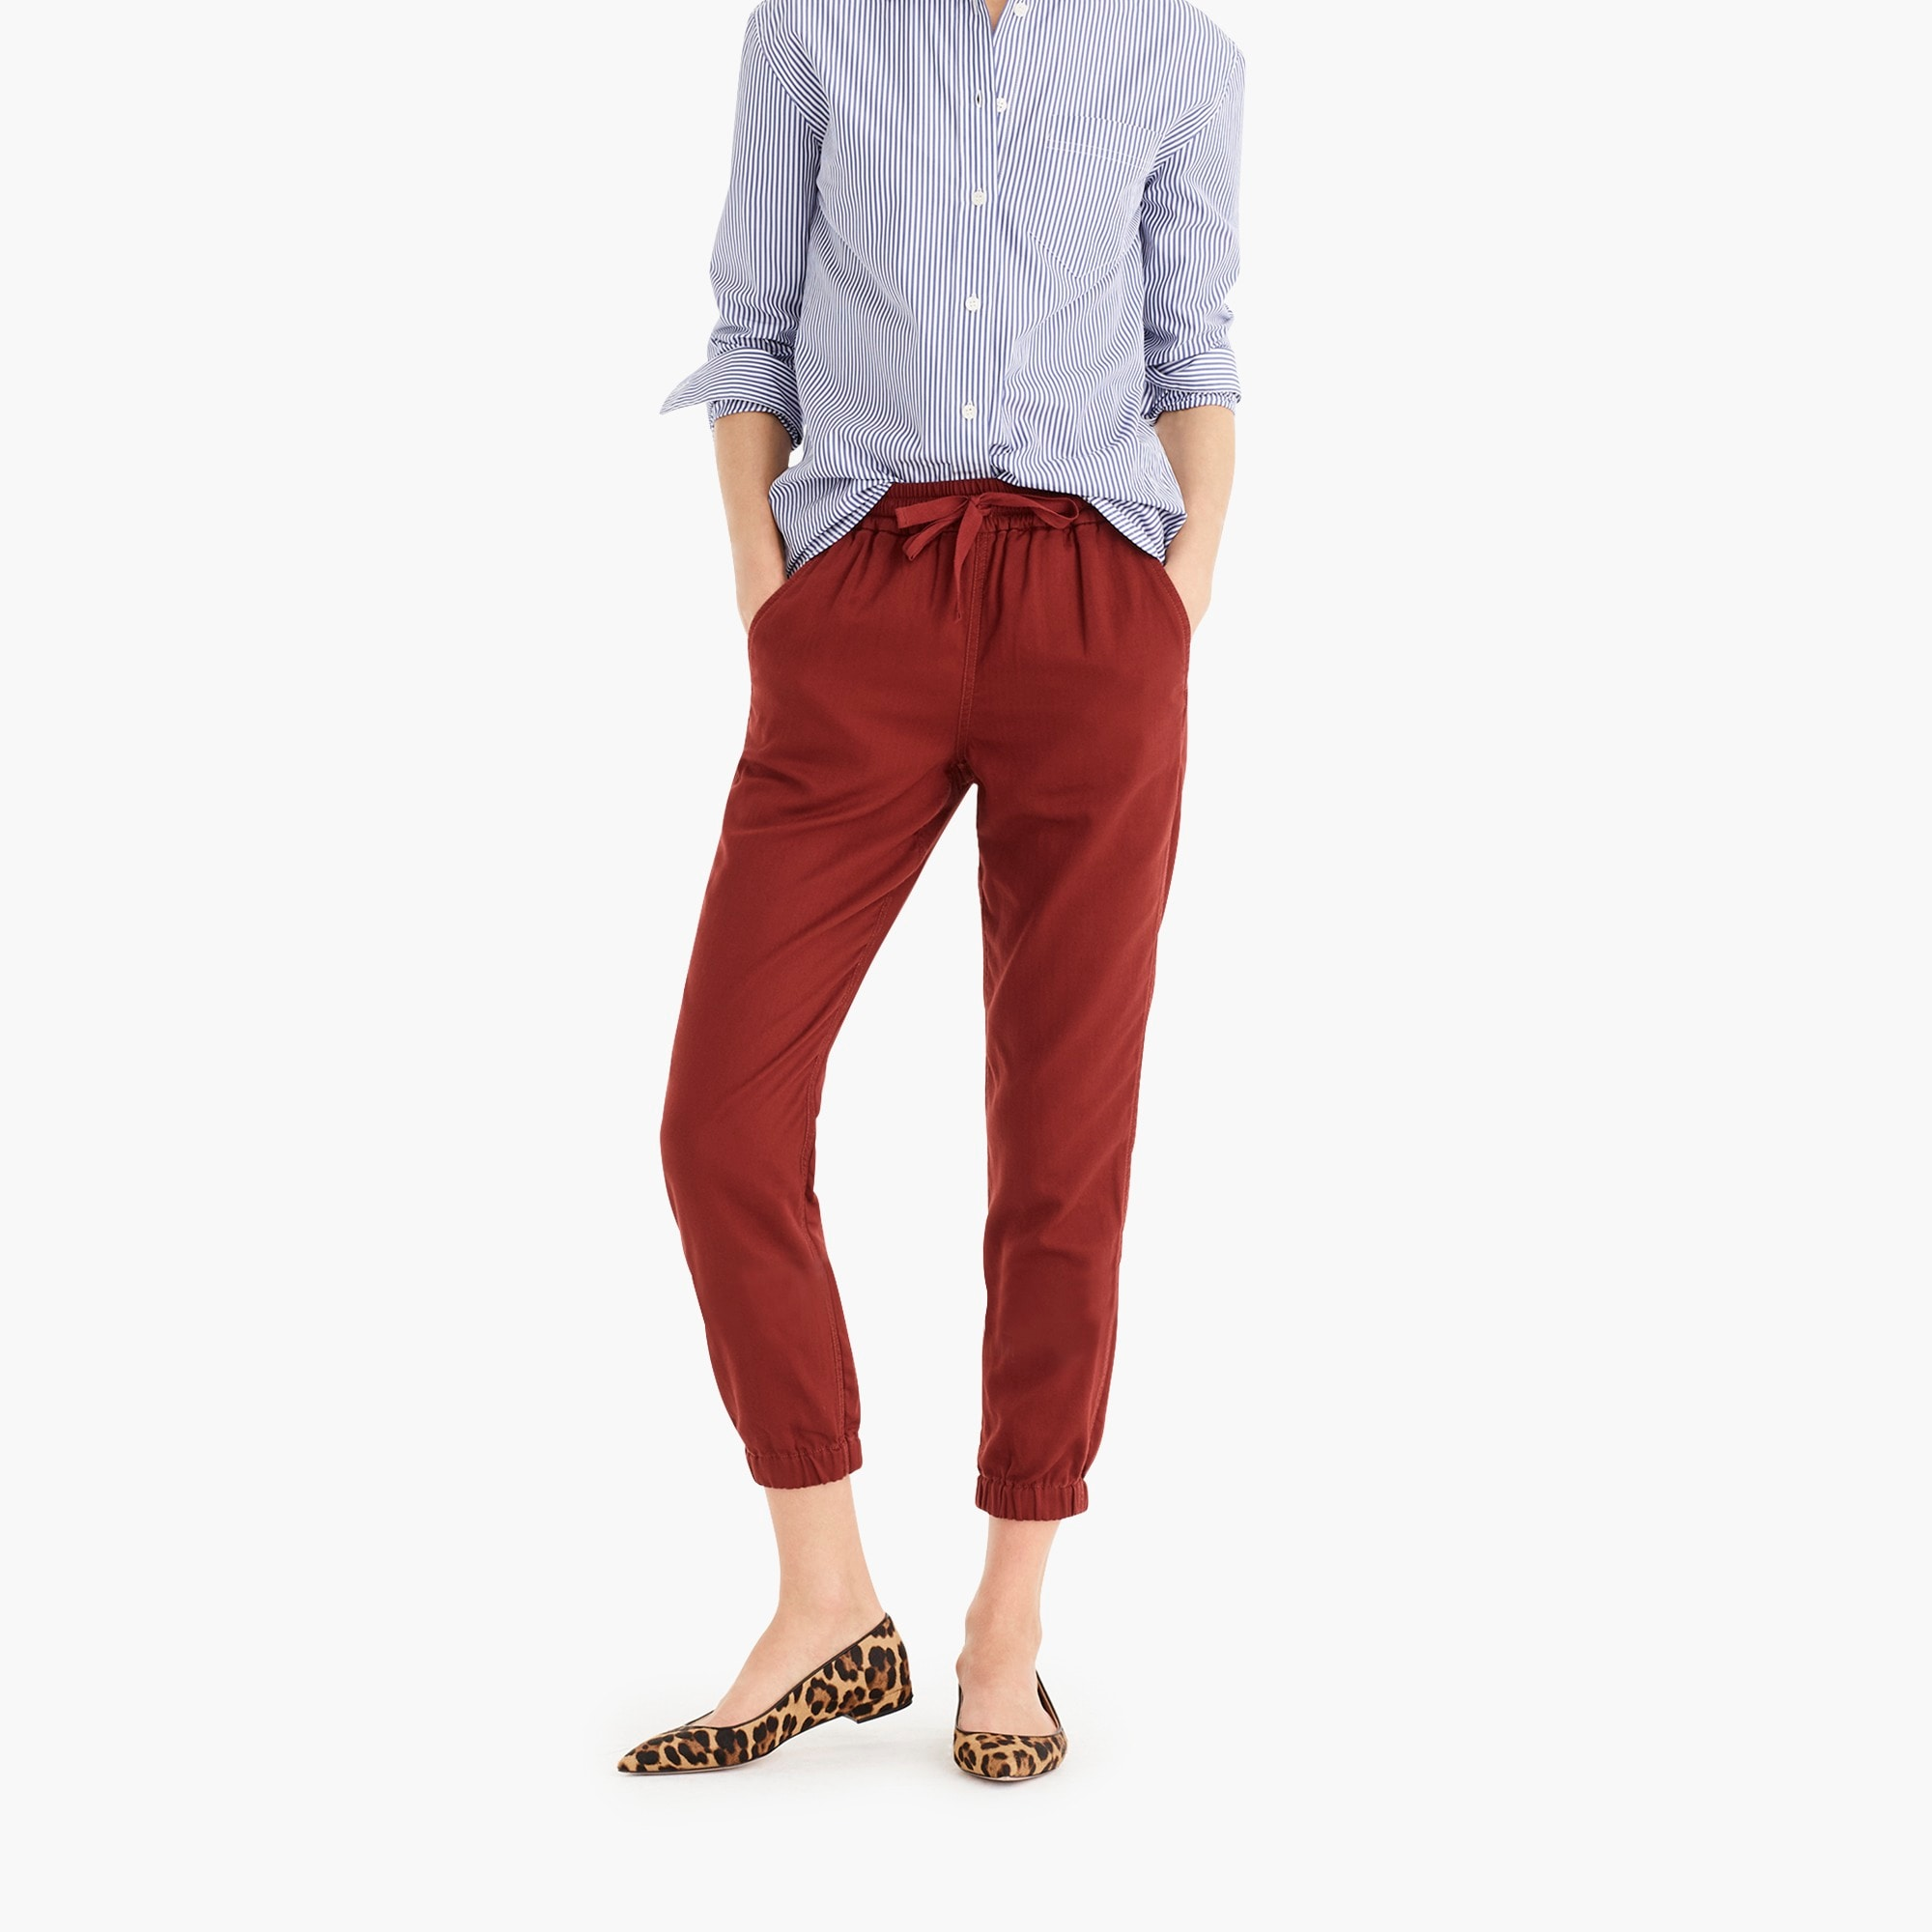 womens Petite Point Sur seaside pant in cotton twill